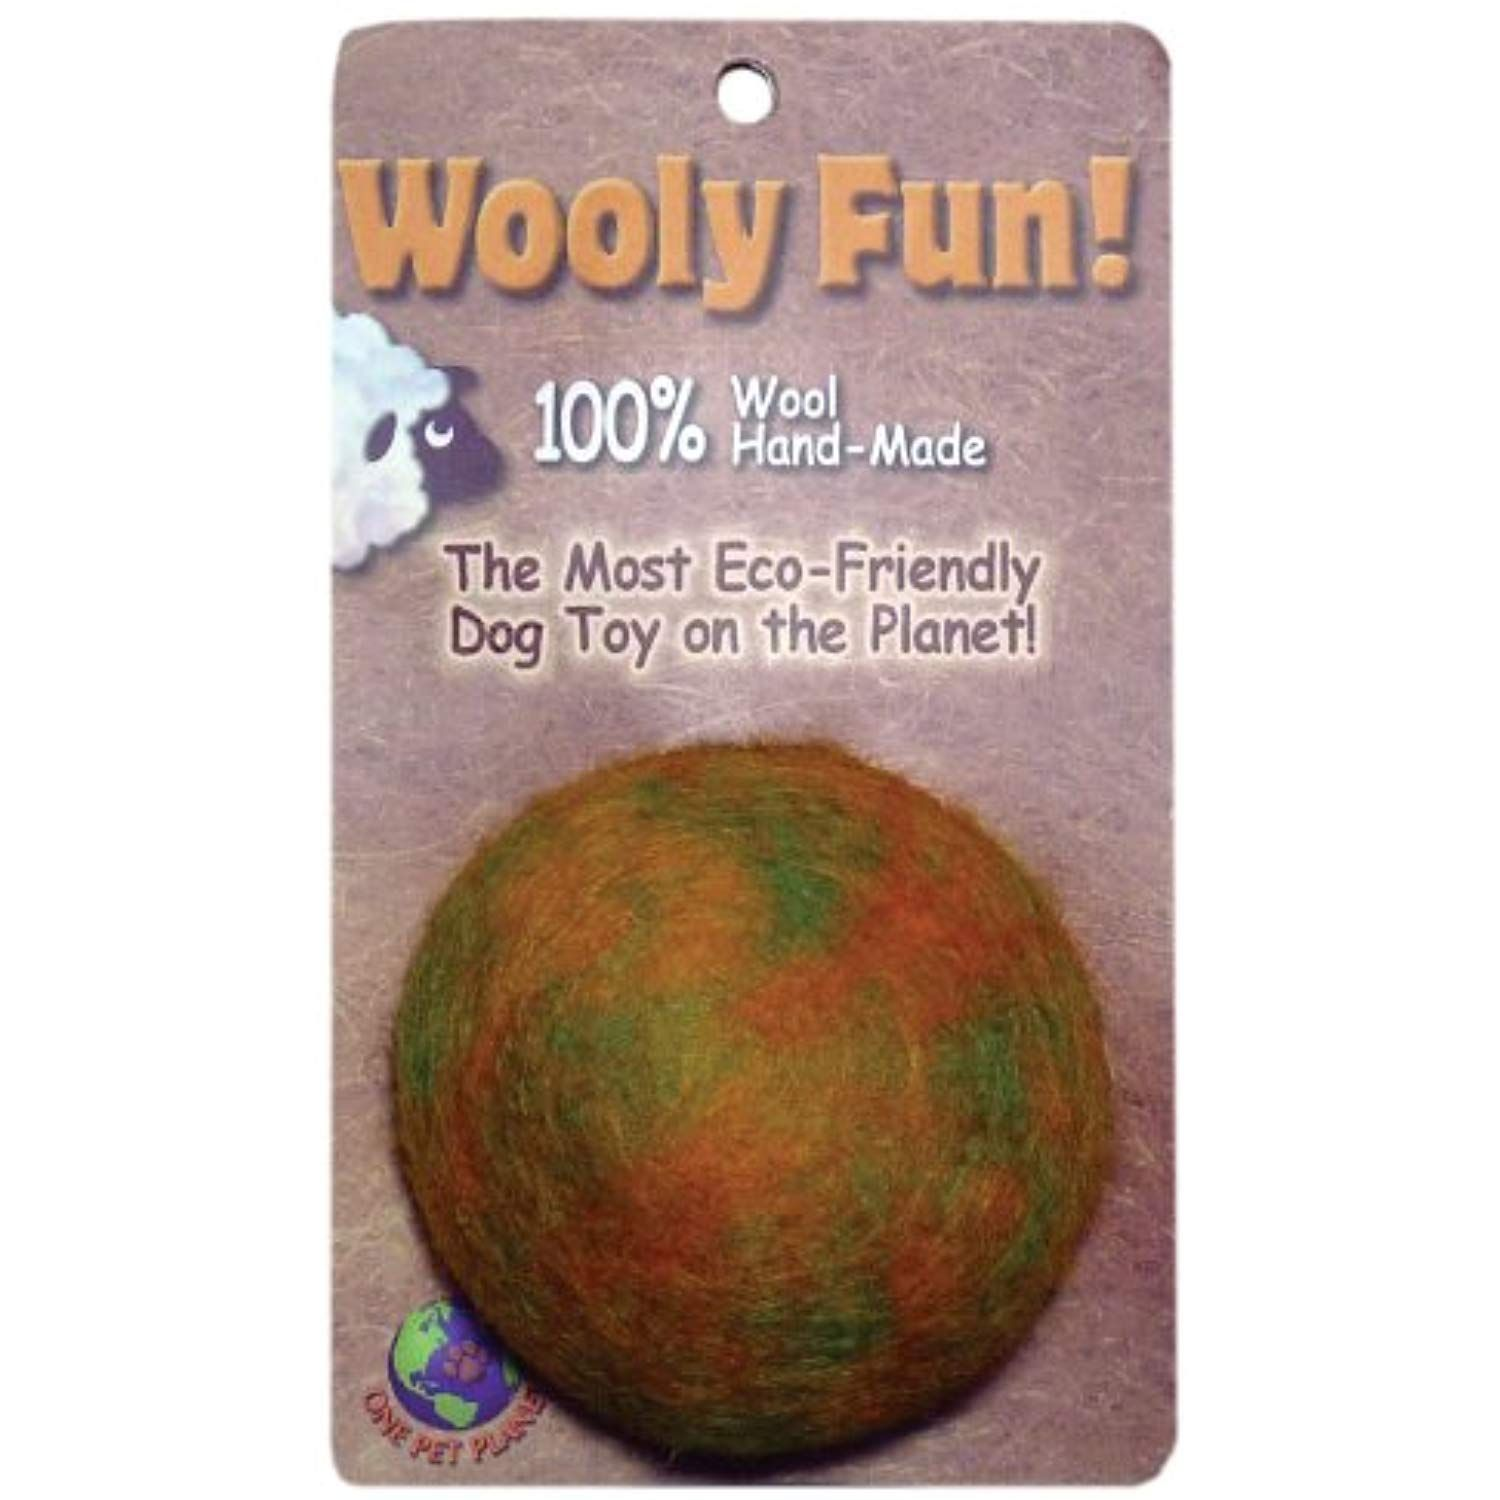 One Pet 86007 2.75Inch Wooly Fun Ball Dog Toy